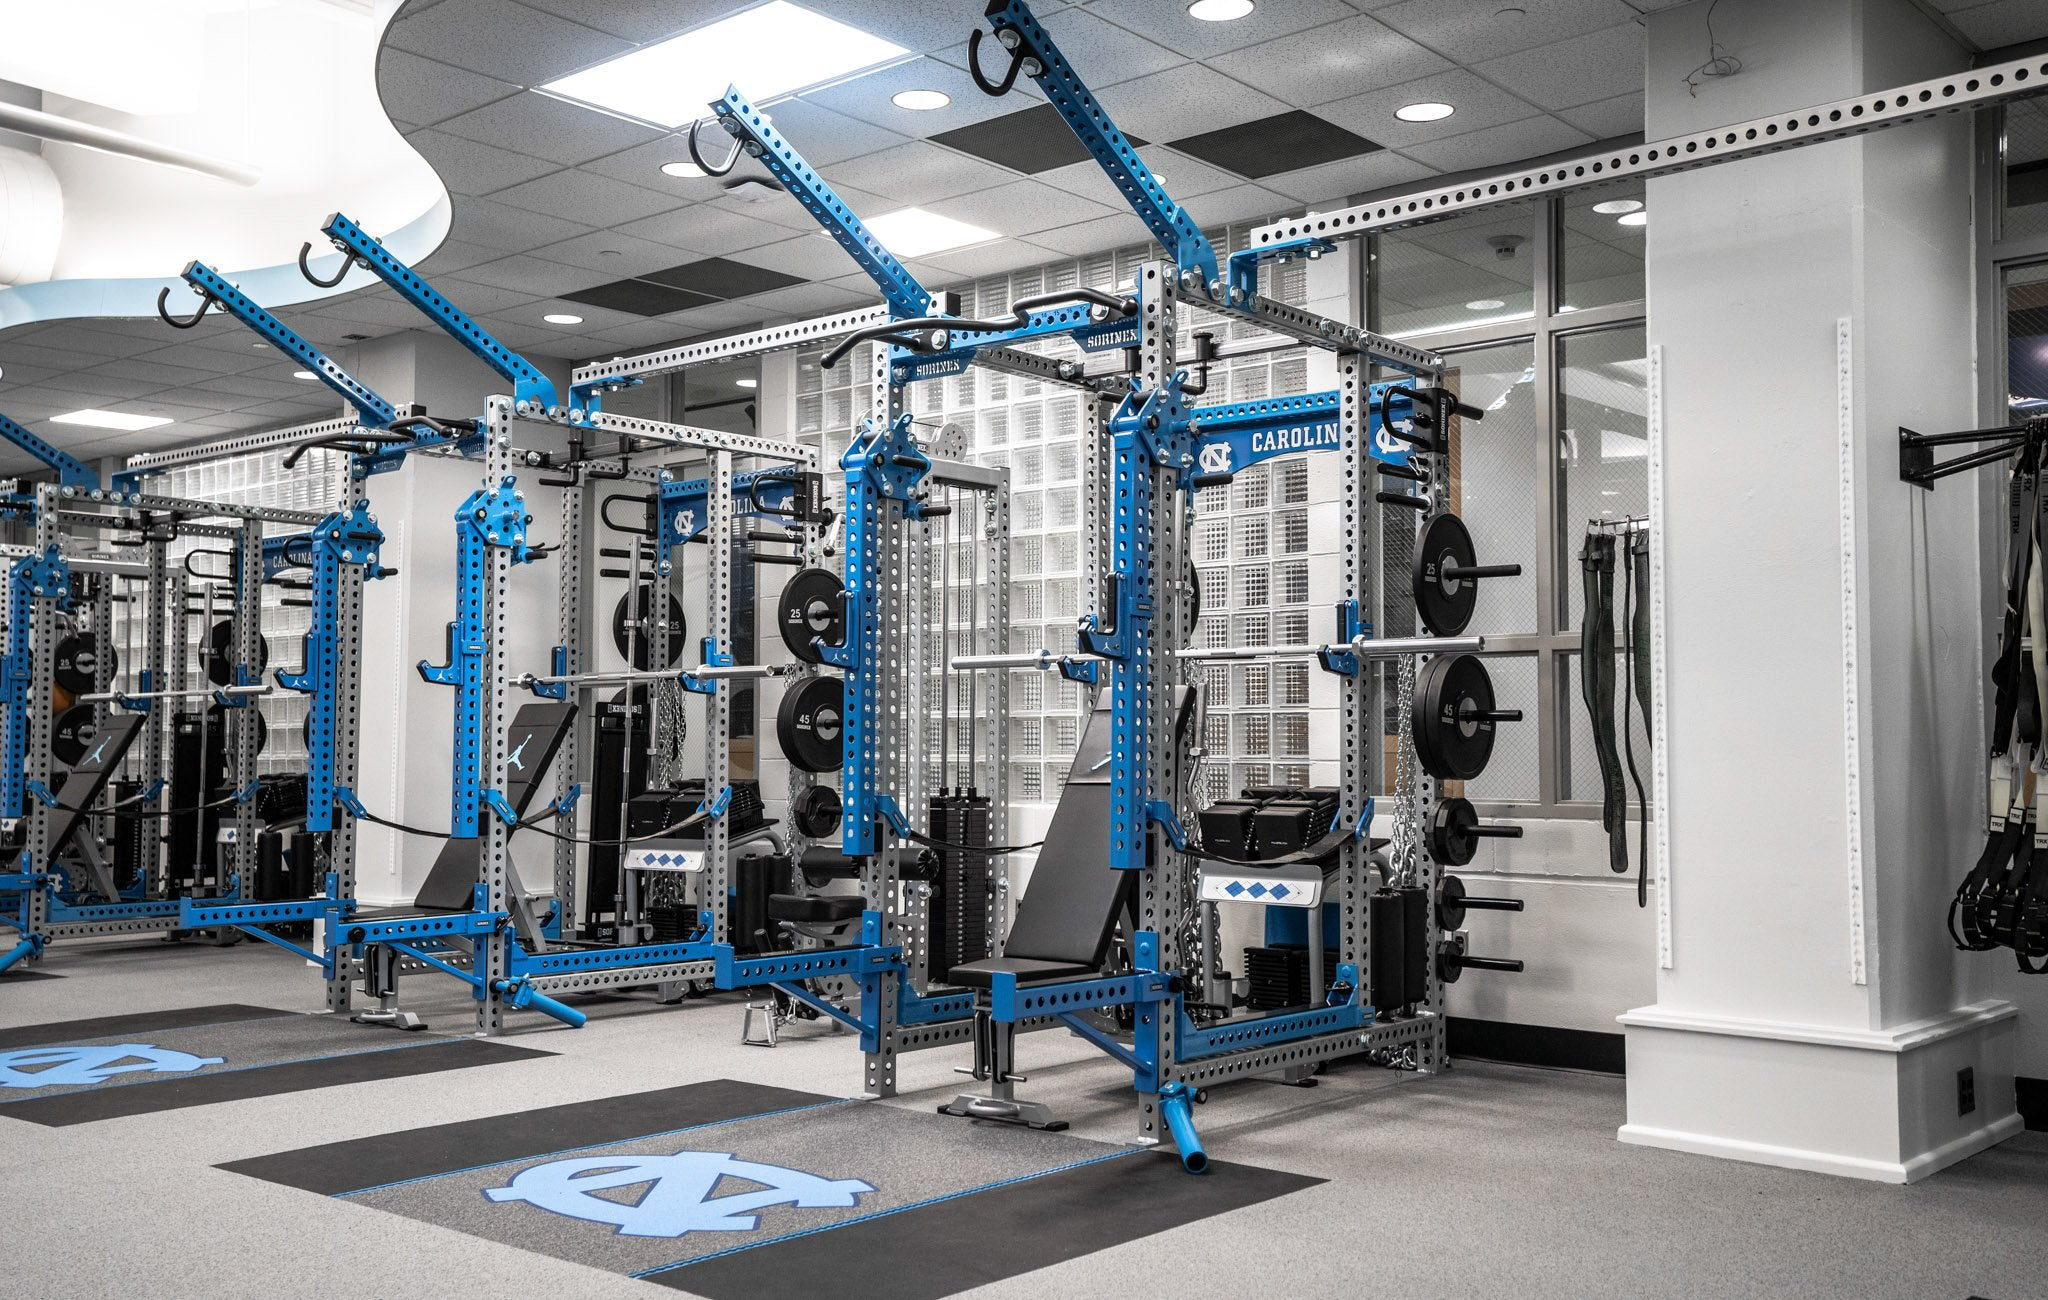 University of North Carolina Base Camp Power Racks